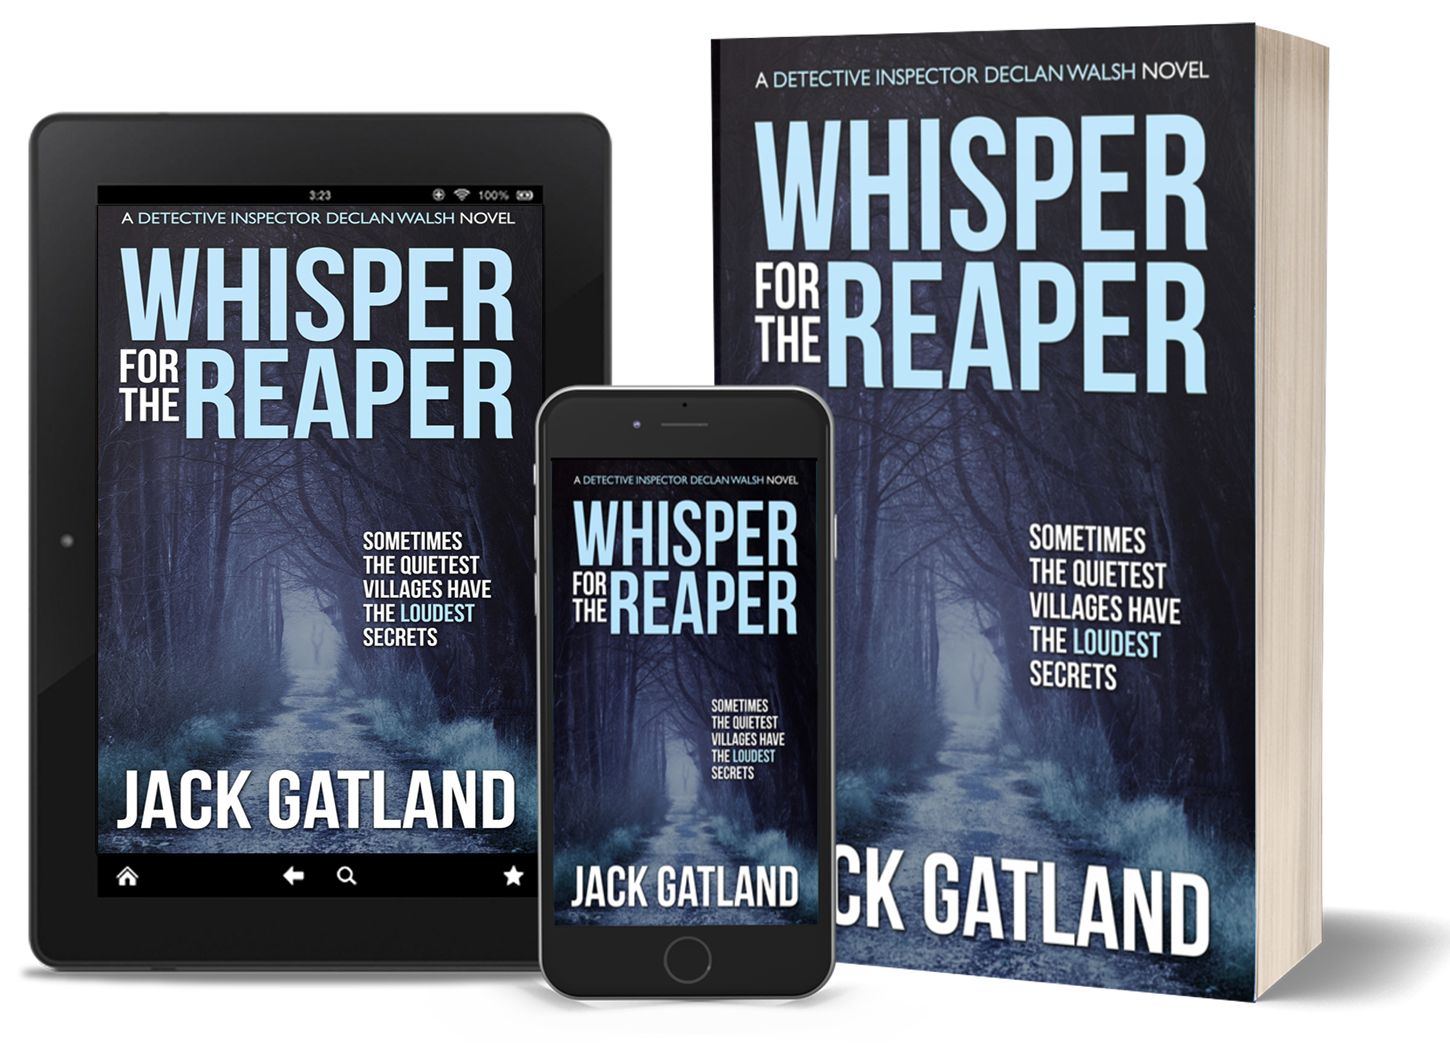 WHISPER FOR THE REAPER: available April 2021